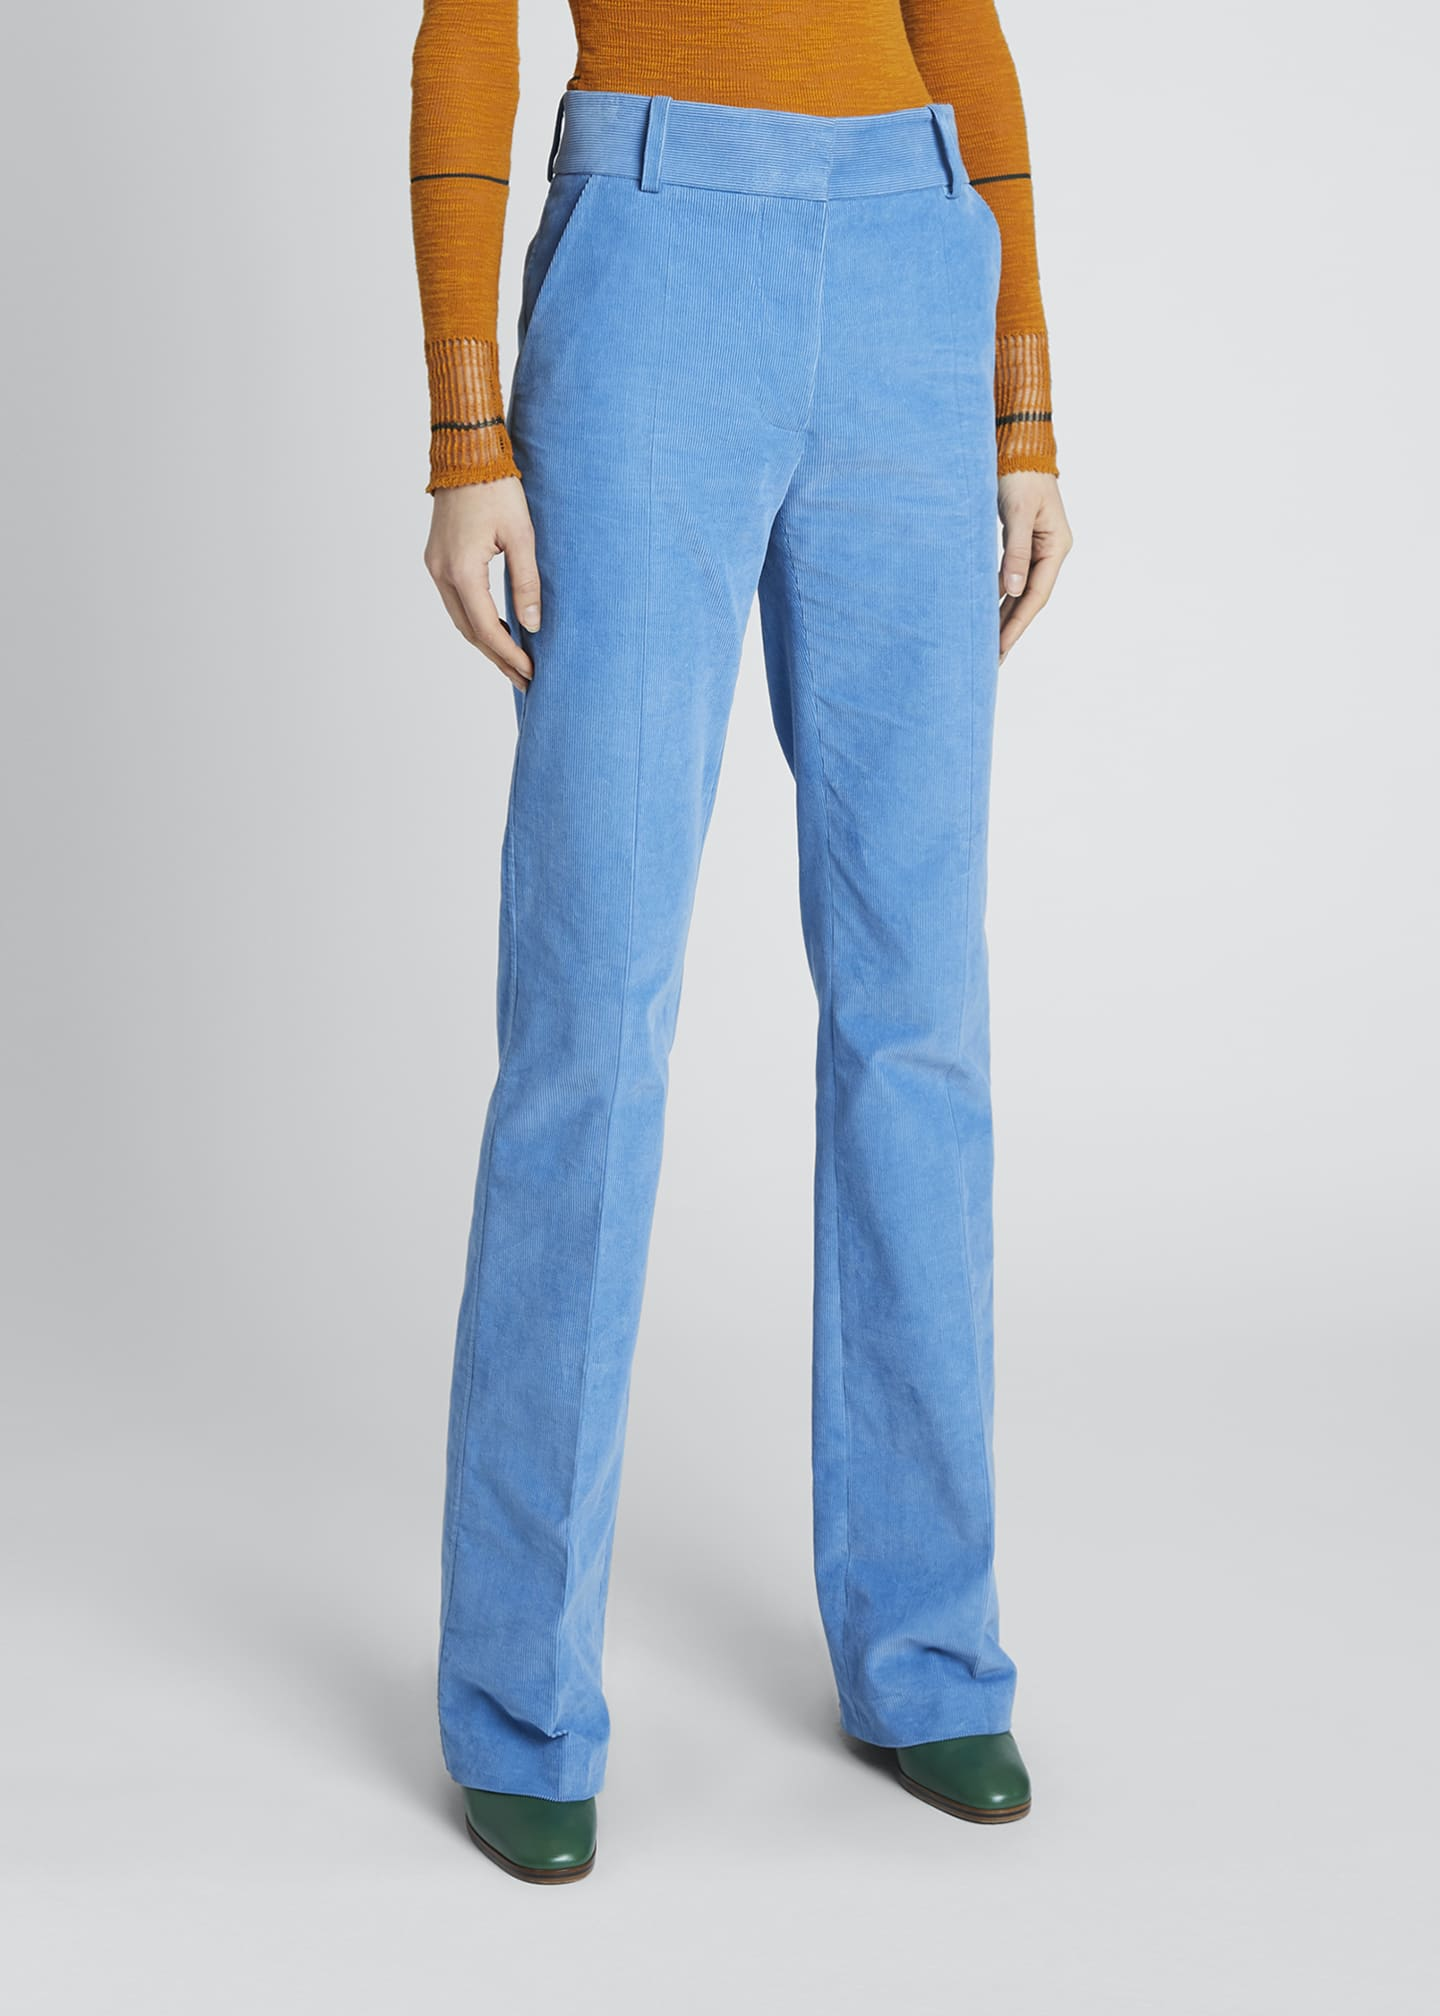 Image 3 of 4: Corduroy Pants